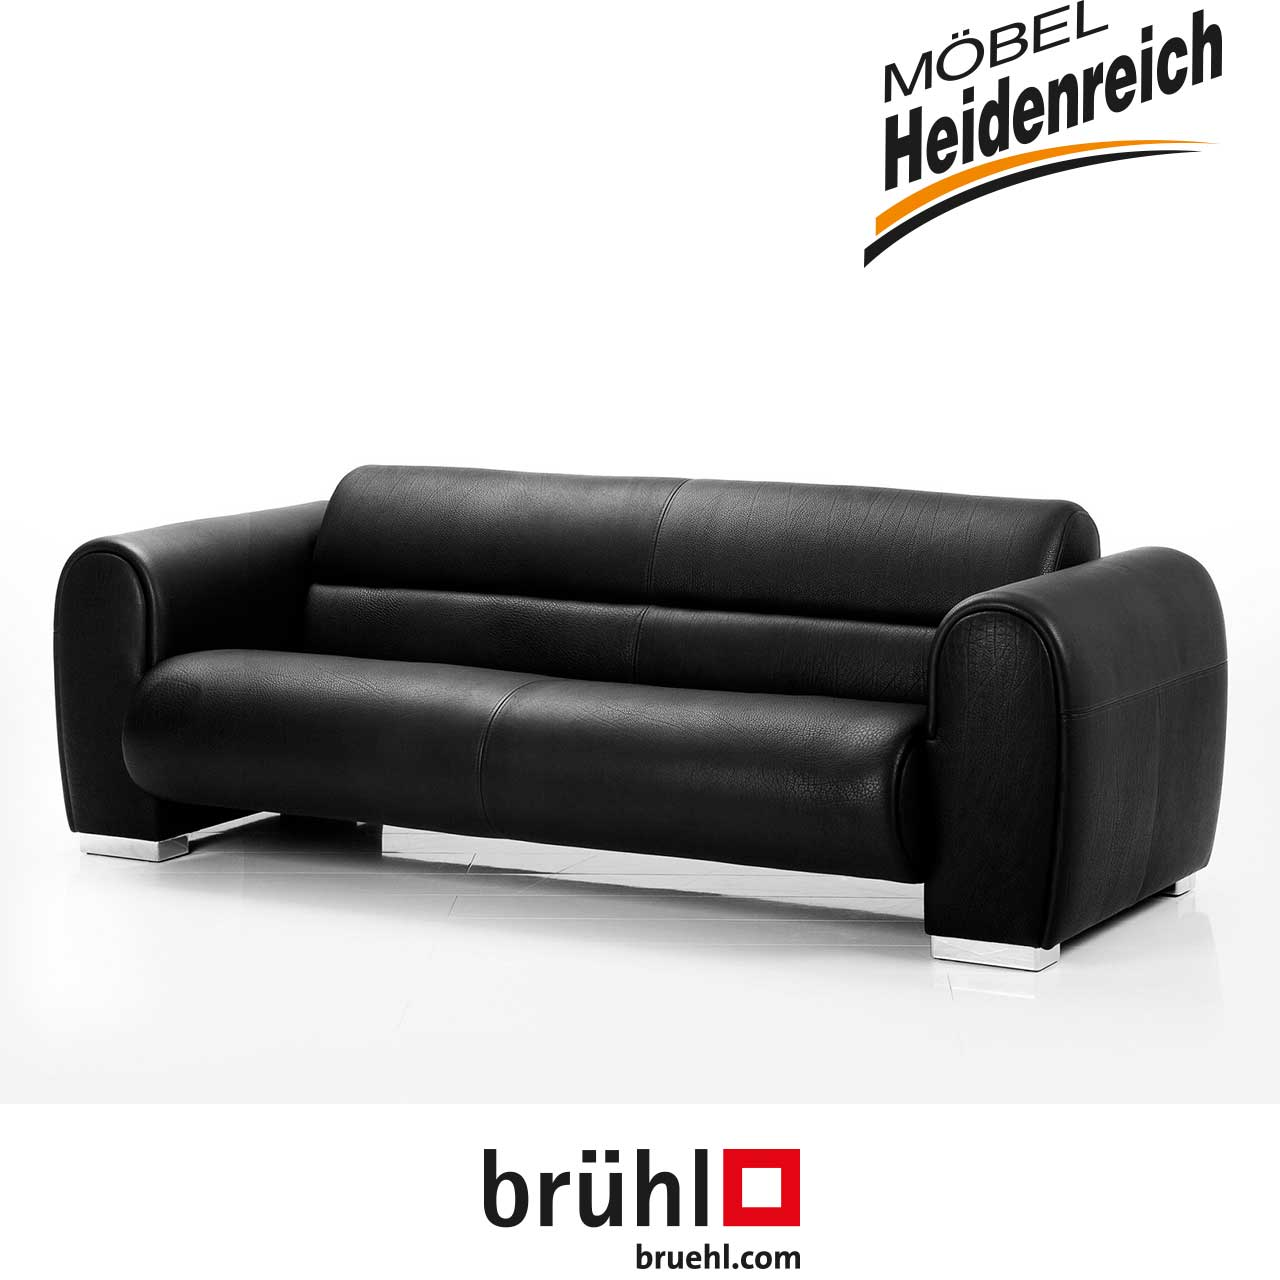 br hl sofa sumo m bel heidenreich. Black Bedroom Furniture Sets. Home Design Ideas